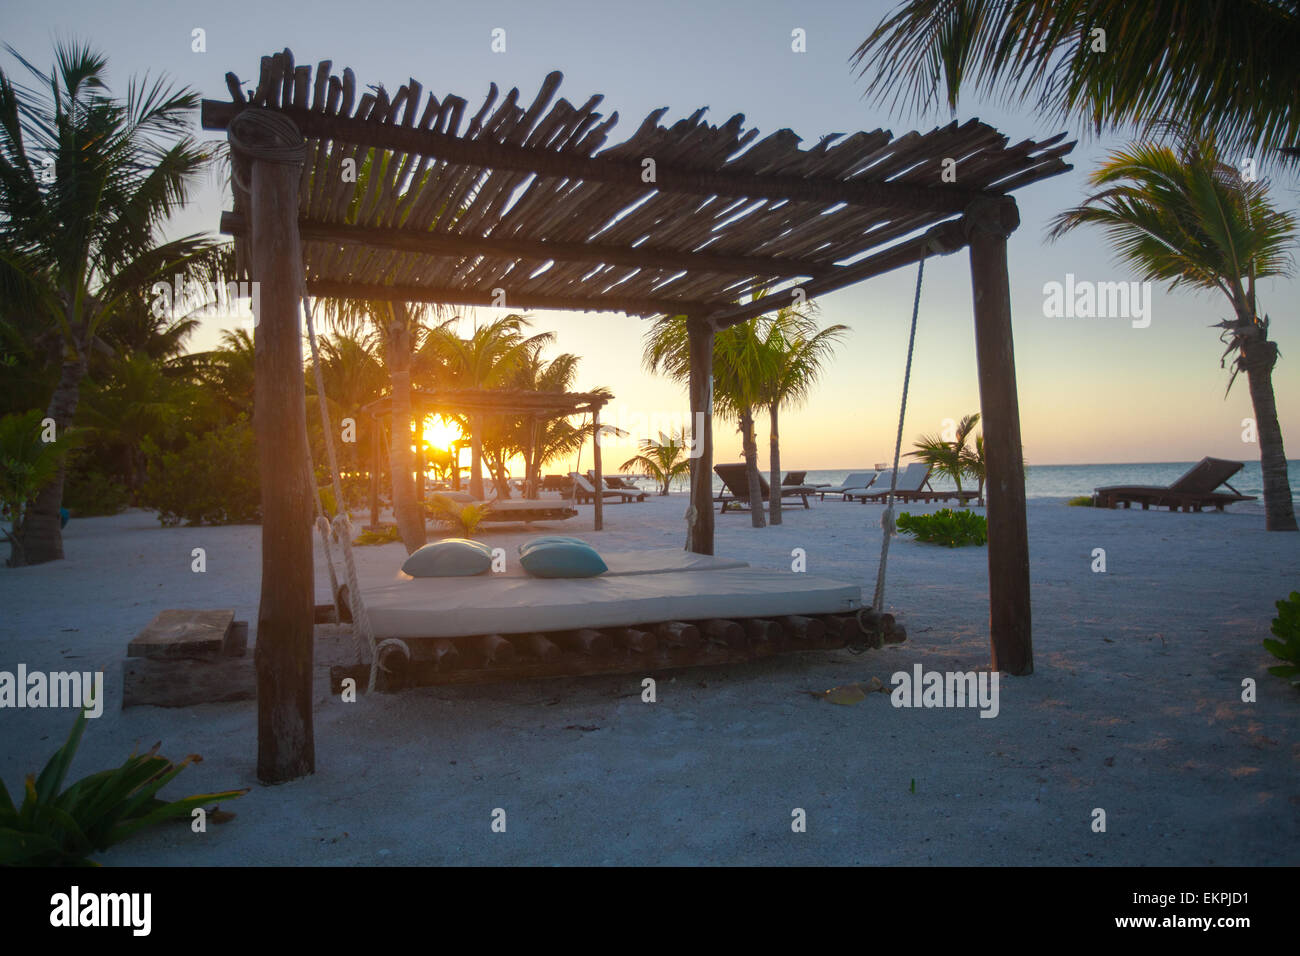 eb680d553ce58 Beach beds among palm trees at perfect tropical coast at sunset ...